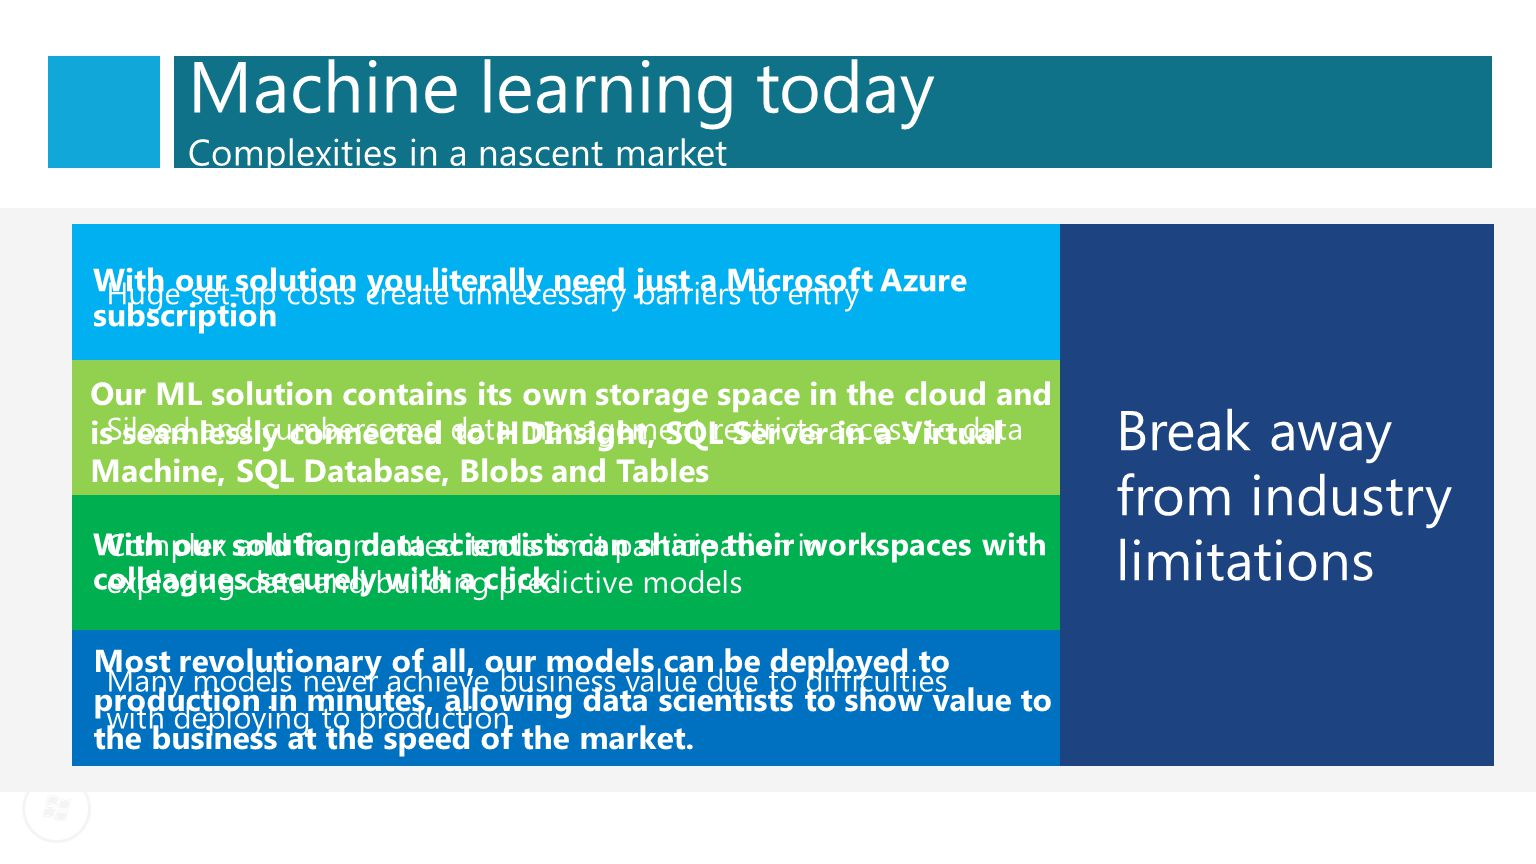 One solution for Machine Learning — from data to results ML Studio and the Data Scientist Access and prepare data Create, test and train models Collaborate One click to stage for production via the API service Business users easily access results: from anywhere, on any device HDInsight Desktop Data Azure Storage Mobile Apps PowerBI/ Dashboards Web Apps ML API service and the Developer Tested models available as an url that can be called from any end point Azure Portal & ML API service and the Azure Ops Team Create ML Studio workspace Assign storage account(s) Monitor ML consumption See alerts when model is ready Deploy models to web service